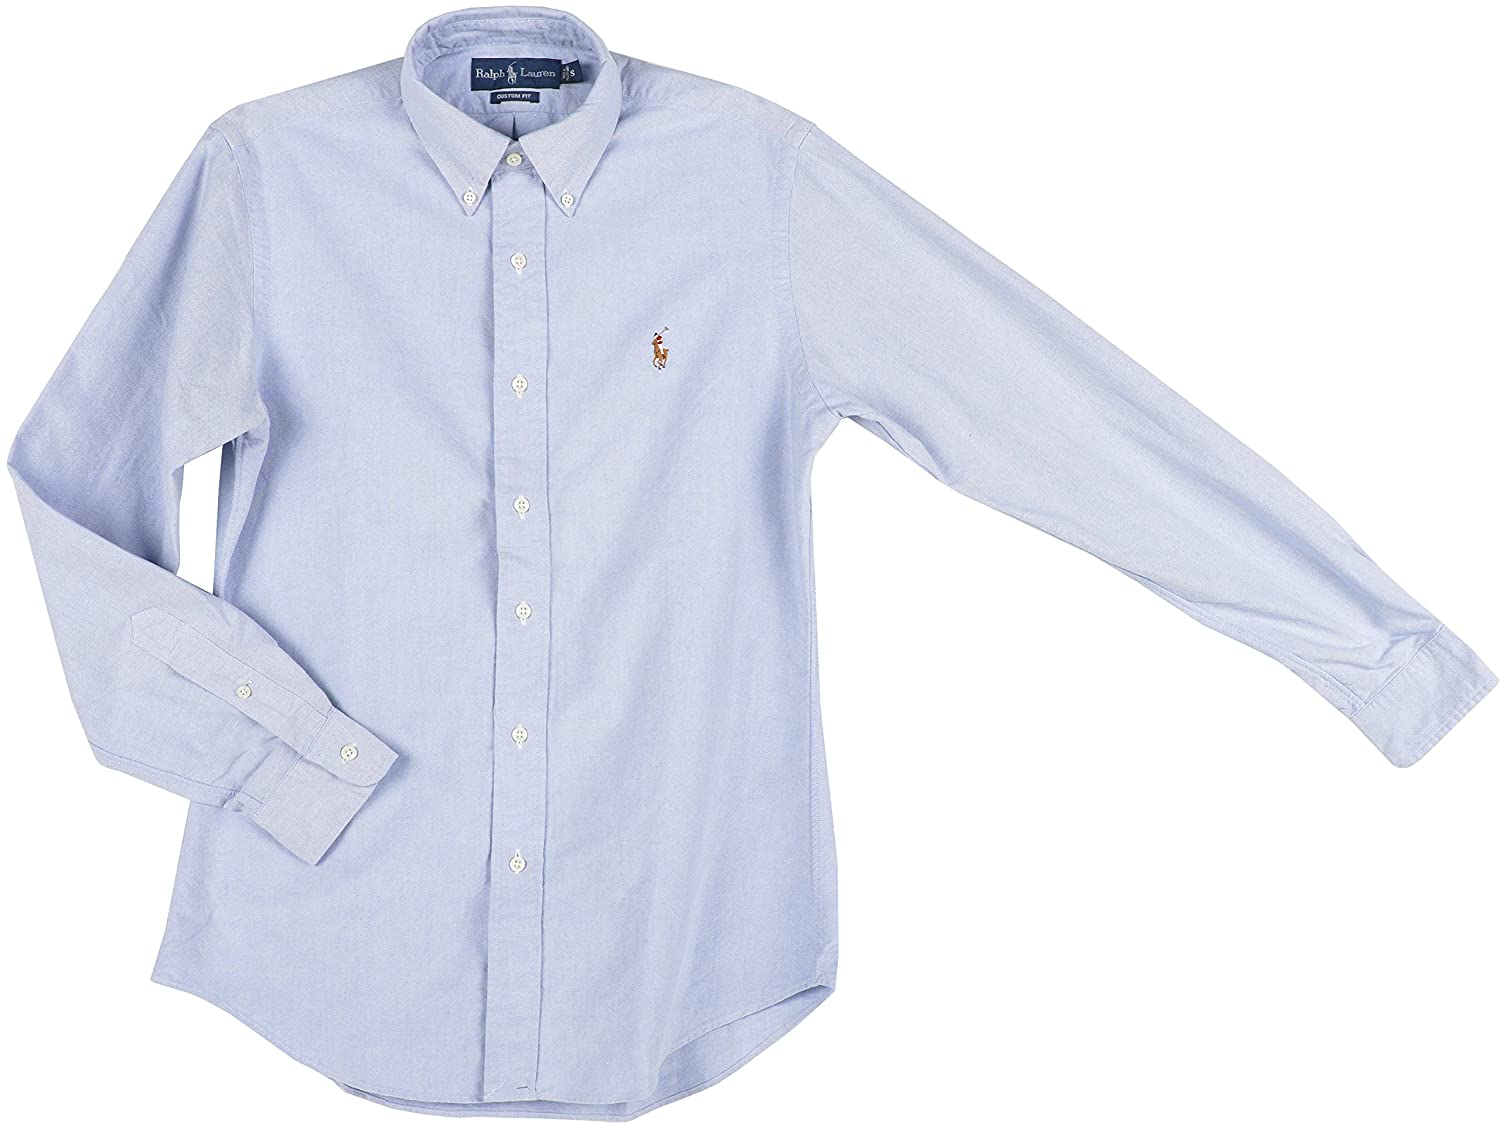 Amazon.com: Polo Ralph Lauren Men's CLS Button Down Shirt: Light ...